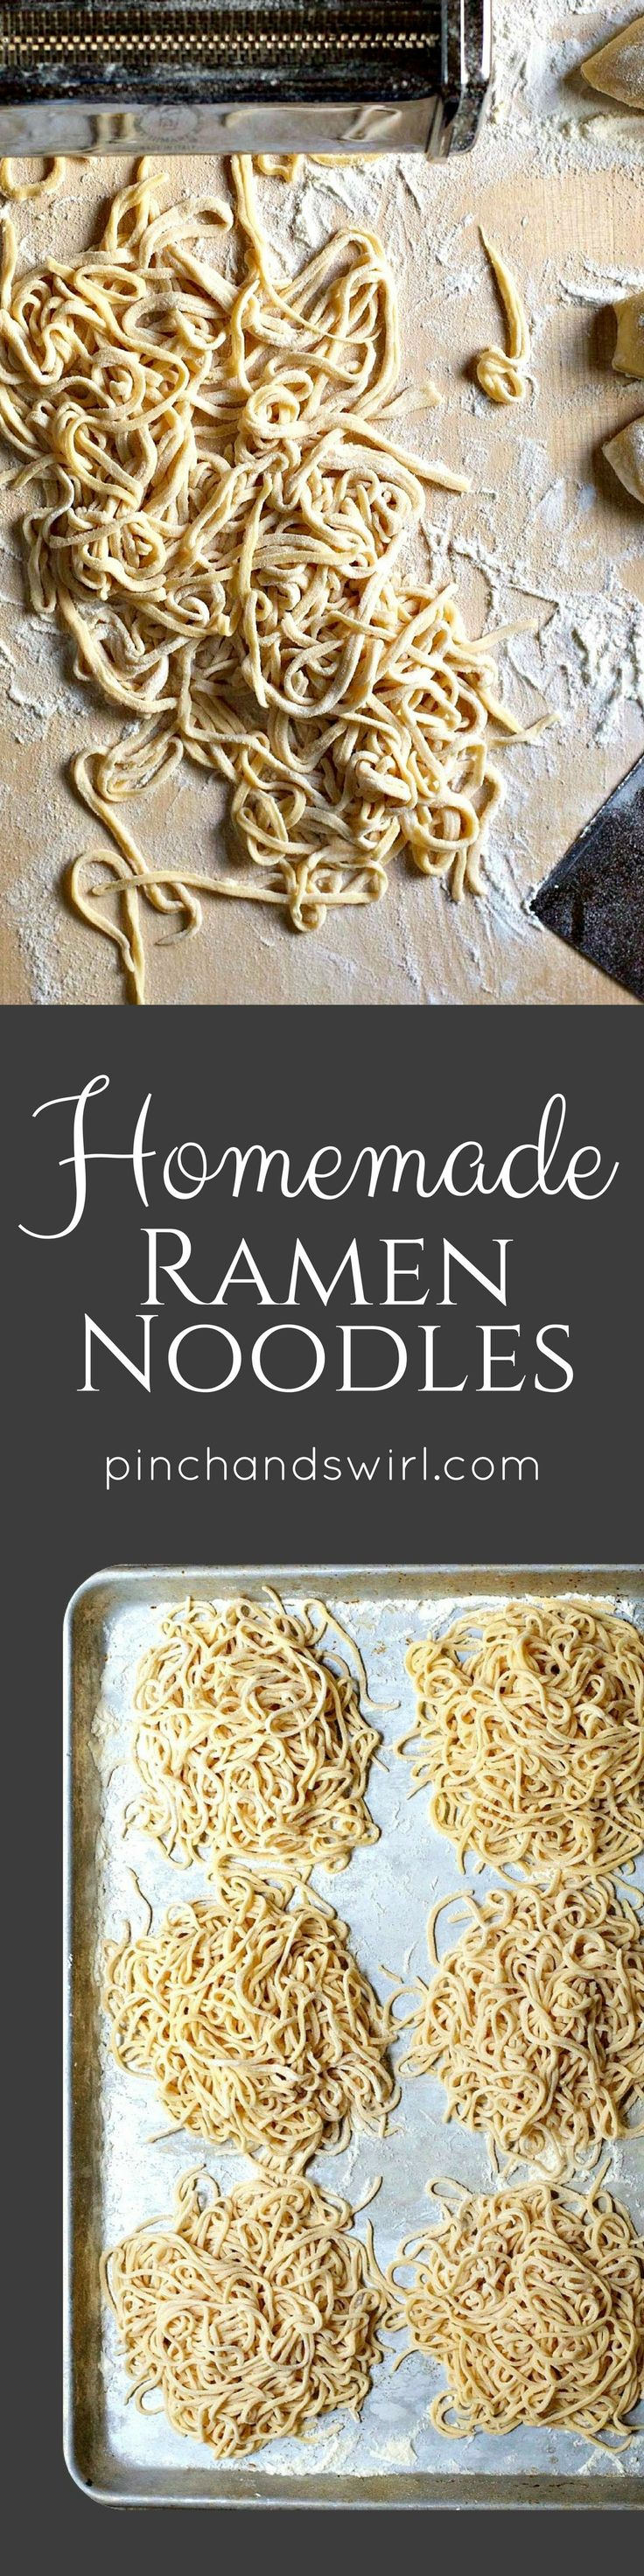 If you've wondered how to make homemade ramen noodles, you have to try this! Through trial and error, I've developed a reliable recipe that works every time. And the ramen noodles freeze beautifully, so make a big batch to have on hand for quick and easy meals!